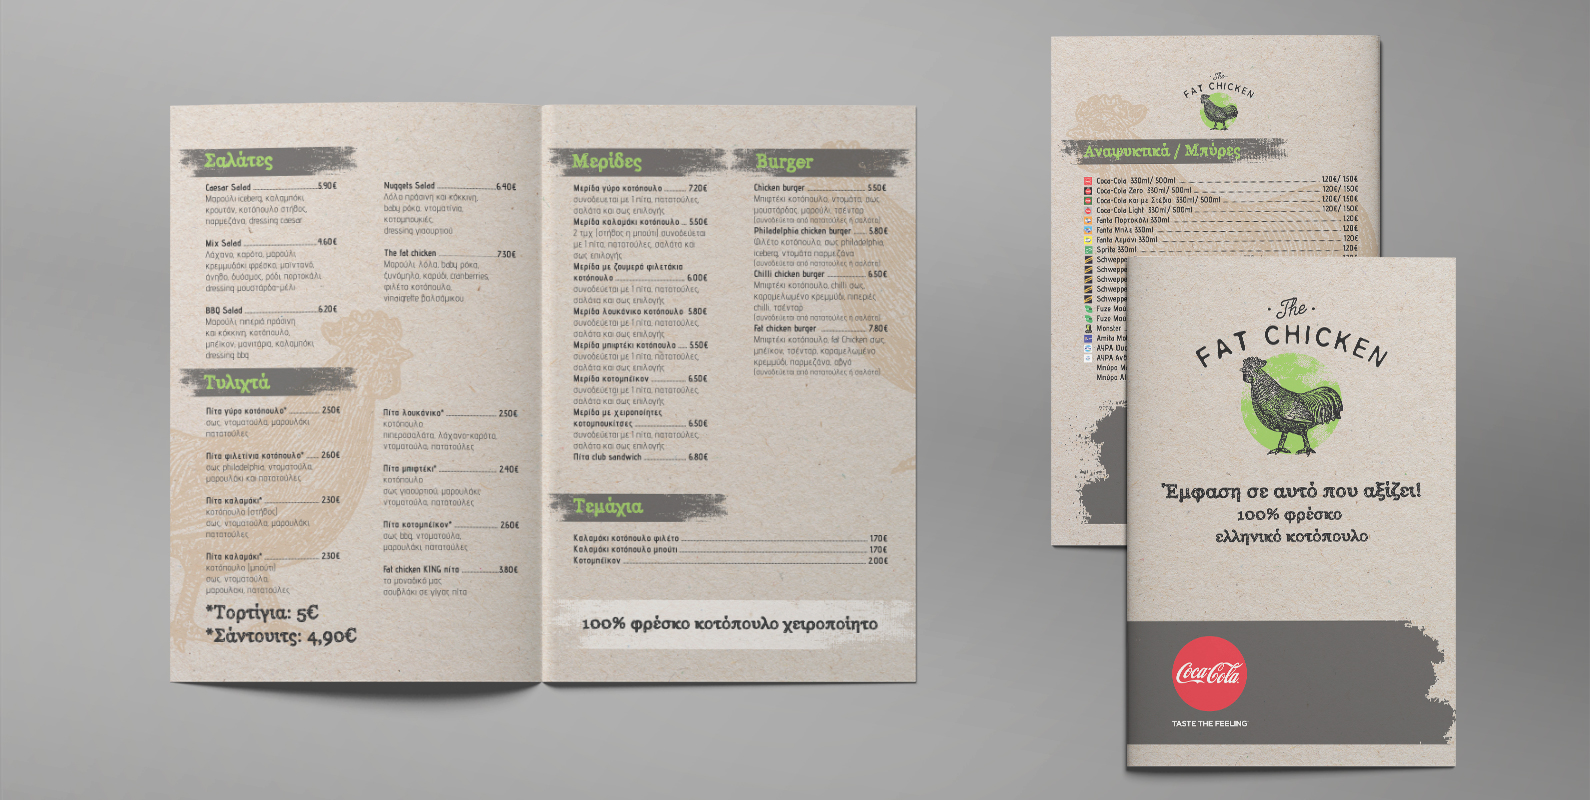 MOCKUP_MENU_FAT-CHICKEN